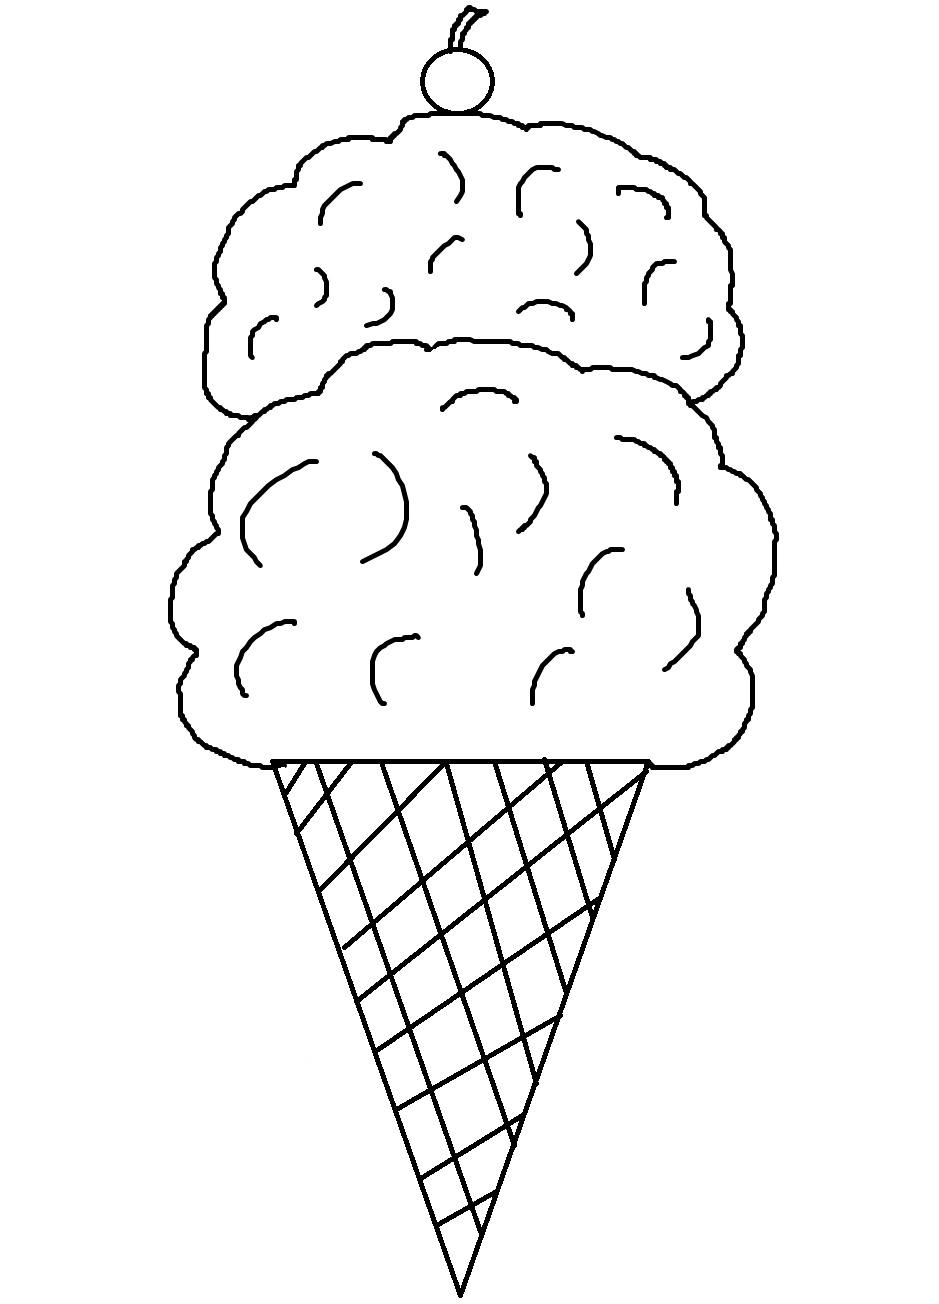 coloring pictures of icecream ice cream truck coloring pages clipart panda free coloring pictures icecream of